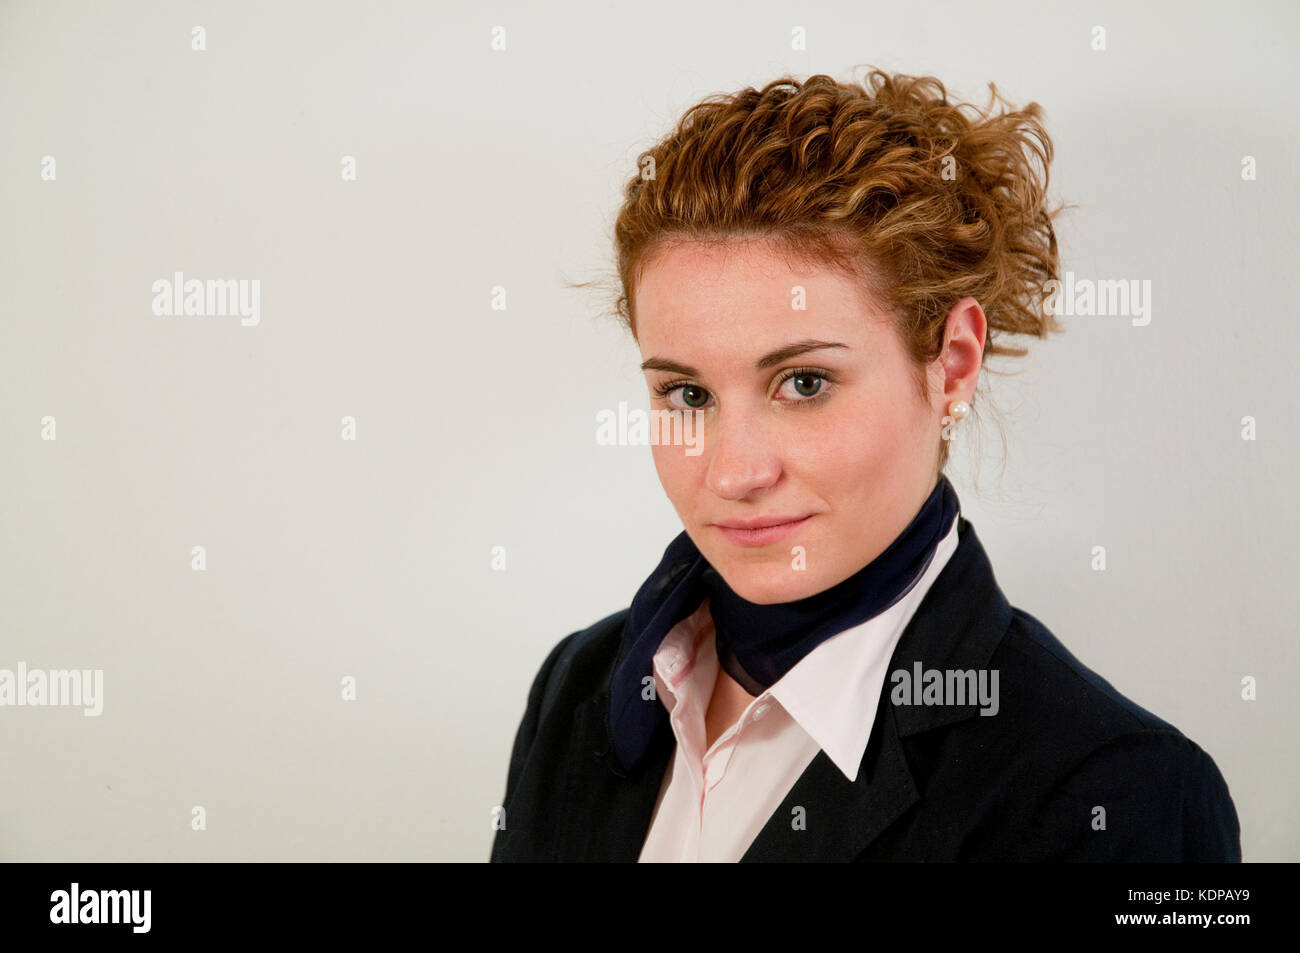 Portrait of young air hostess looking at the camera. - Stock Image